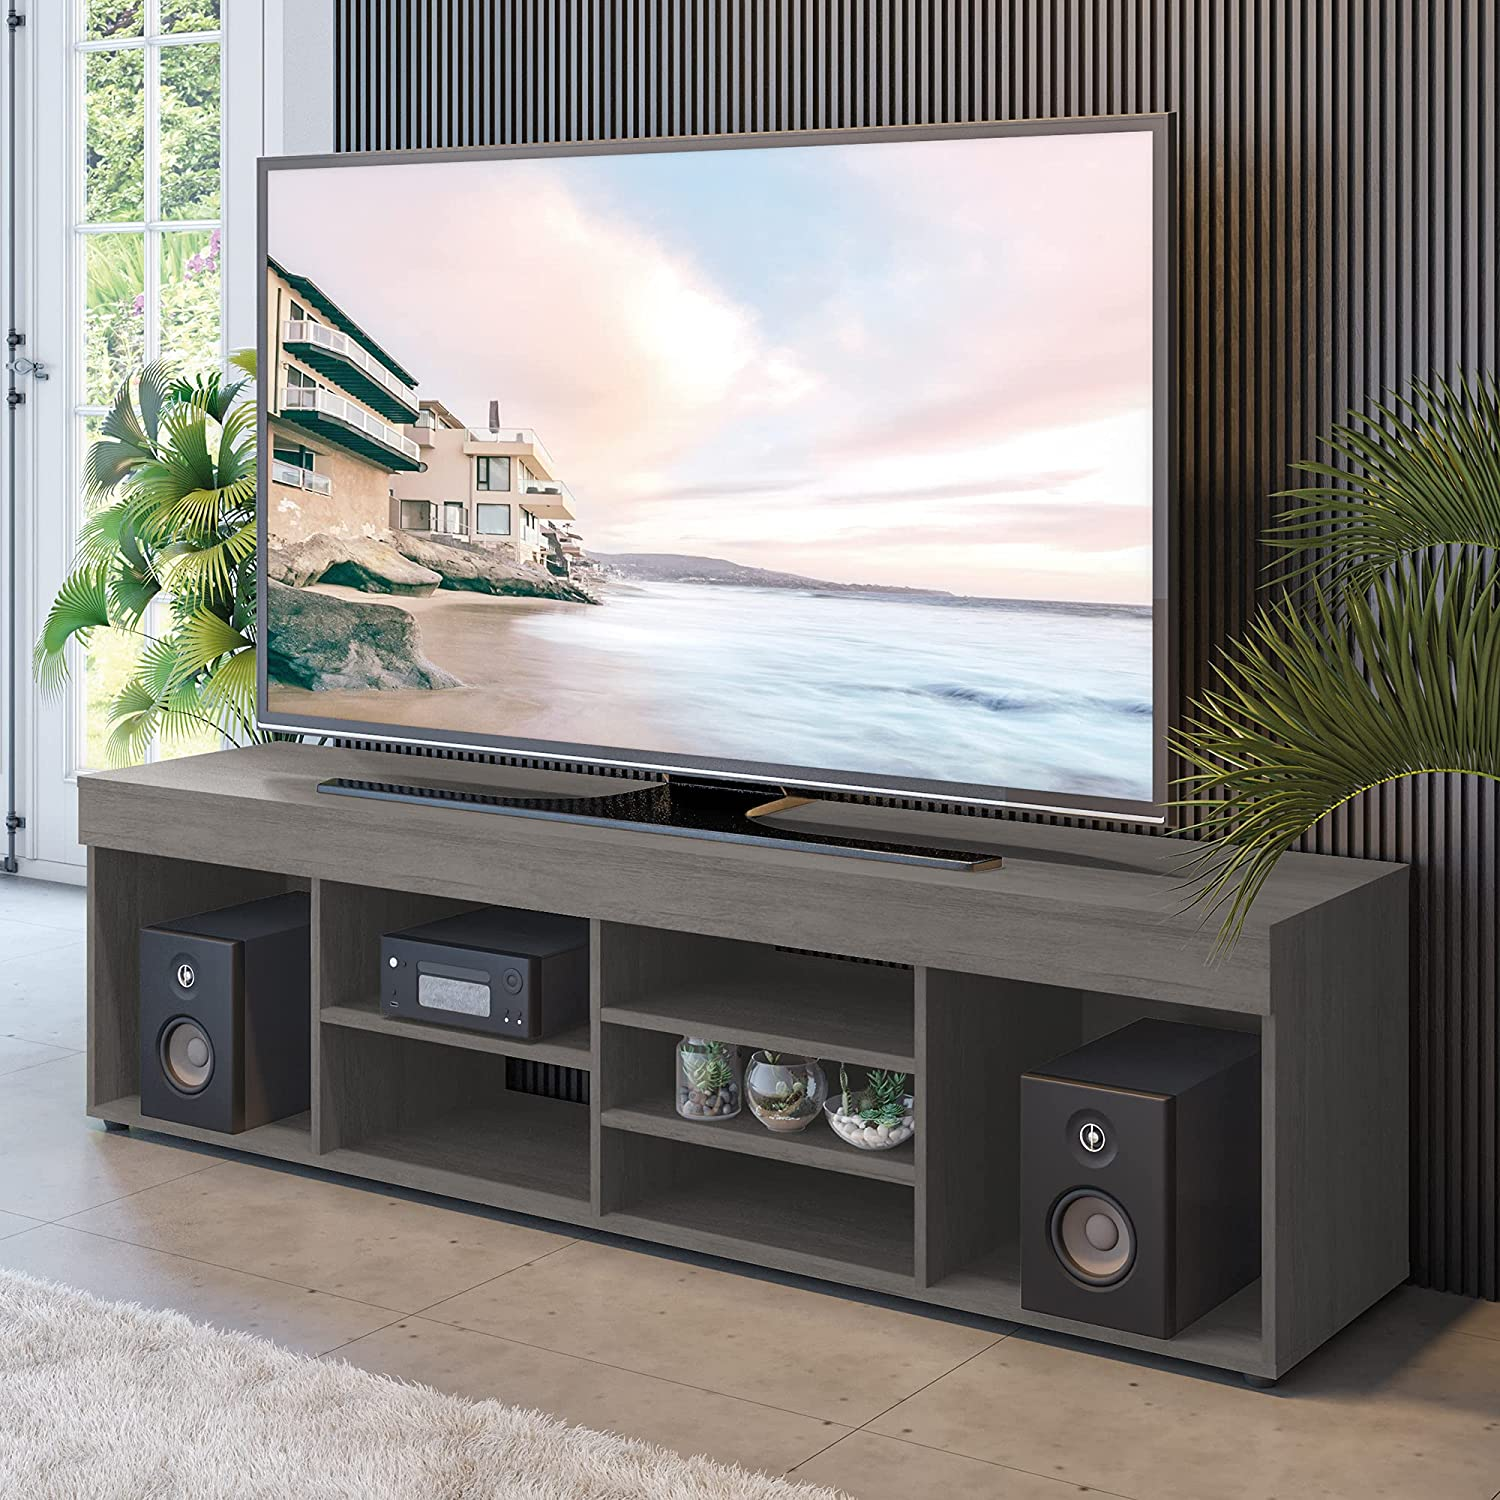 Boahaus Selling Dakota TV Stand up to Shelves Gre inches 7 Quality inspection 65 Open